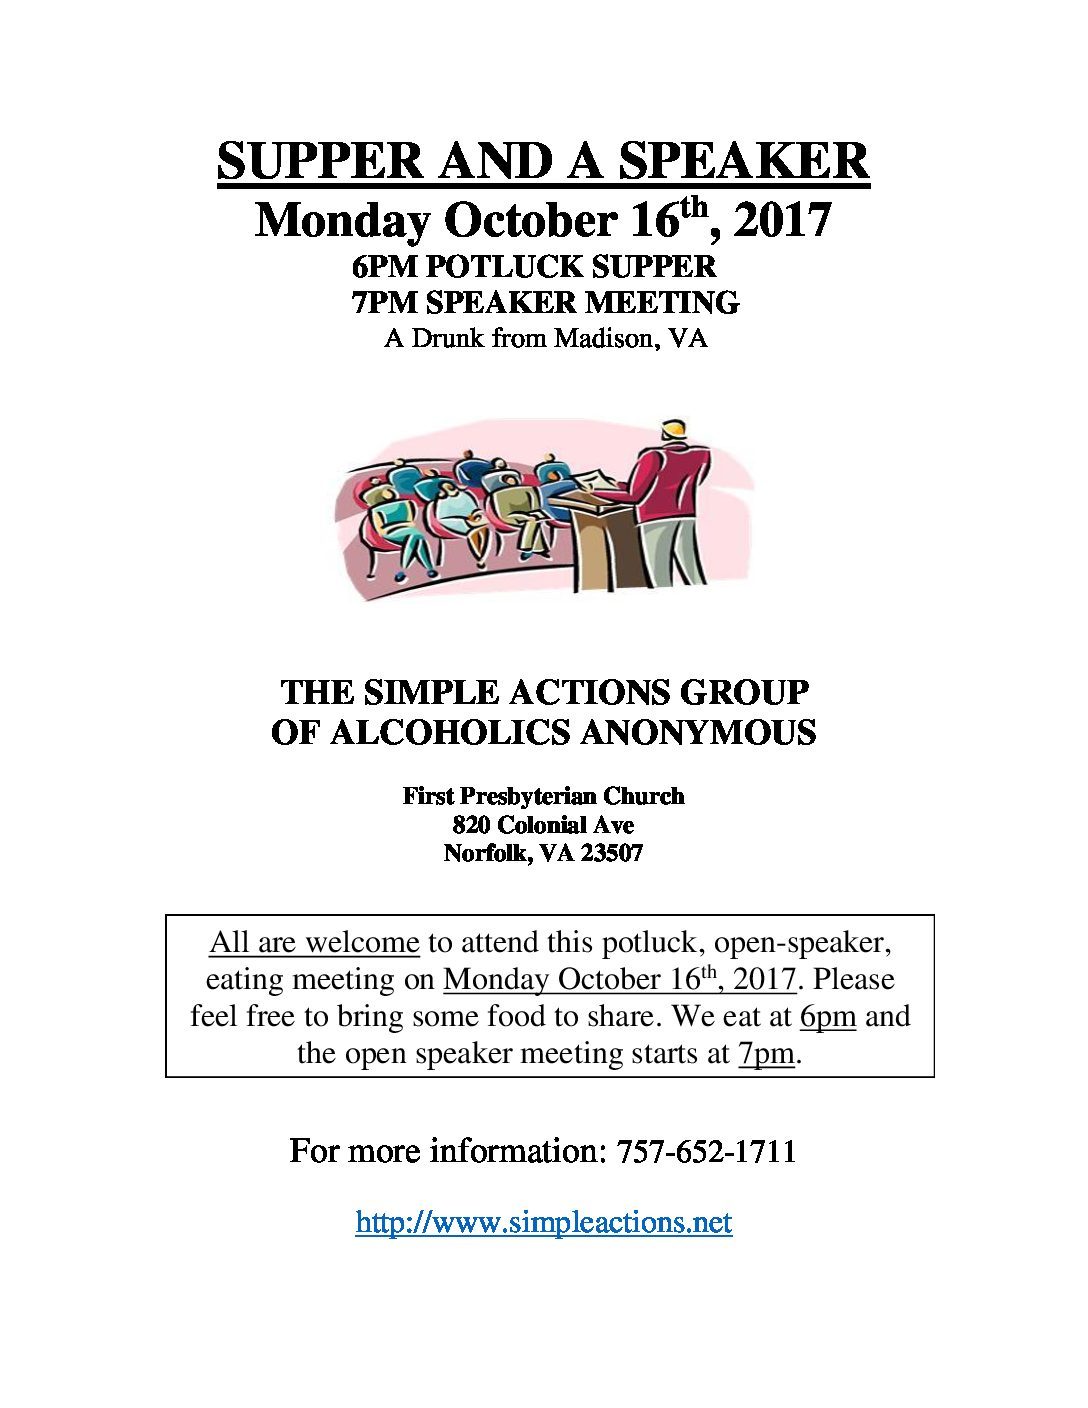 Supper & Speaker Meeting presented by Simple Actions